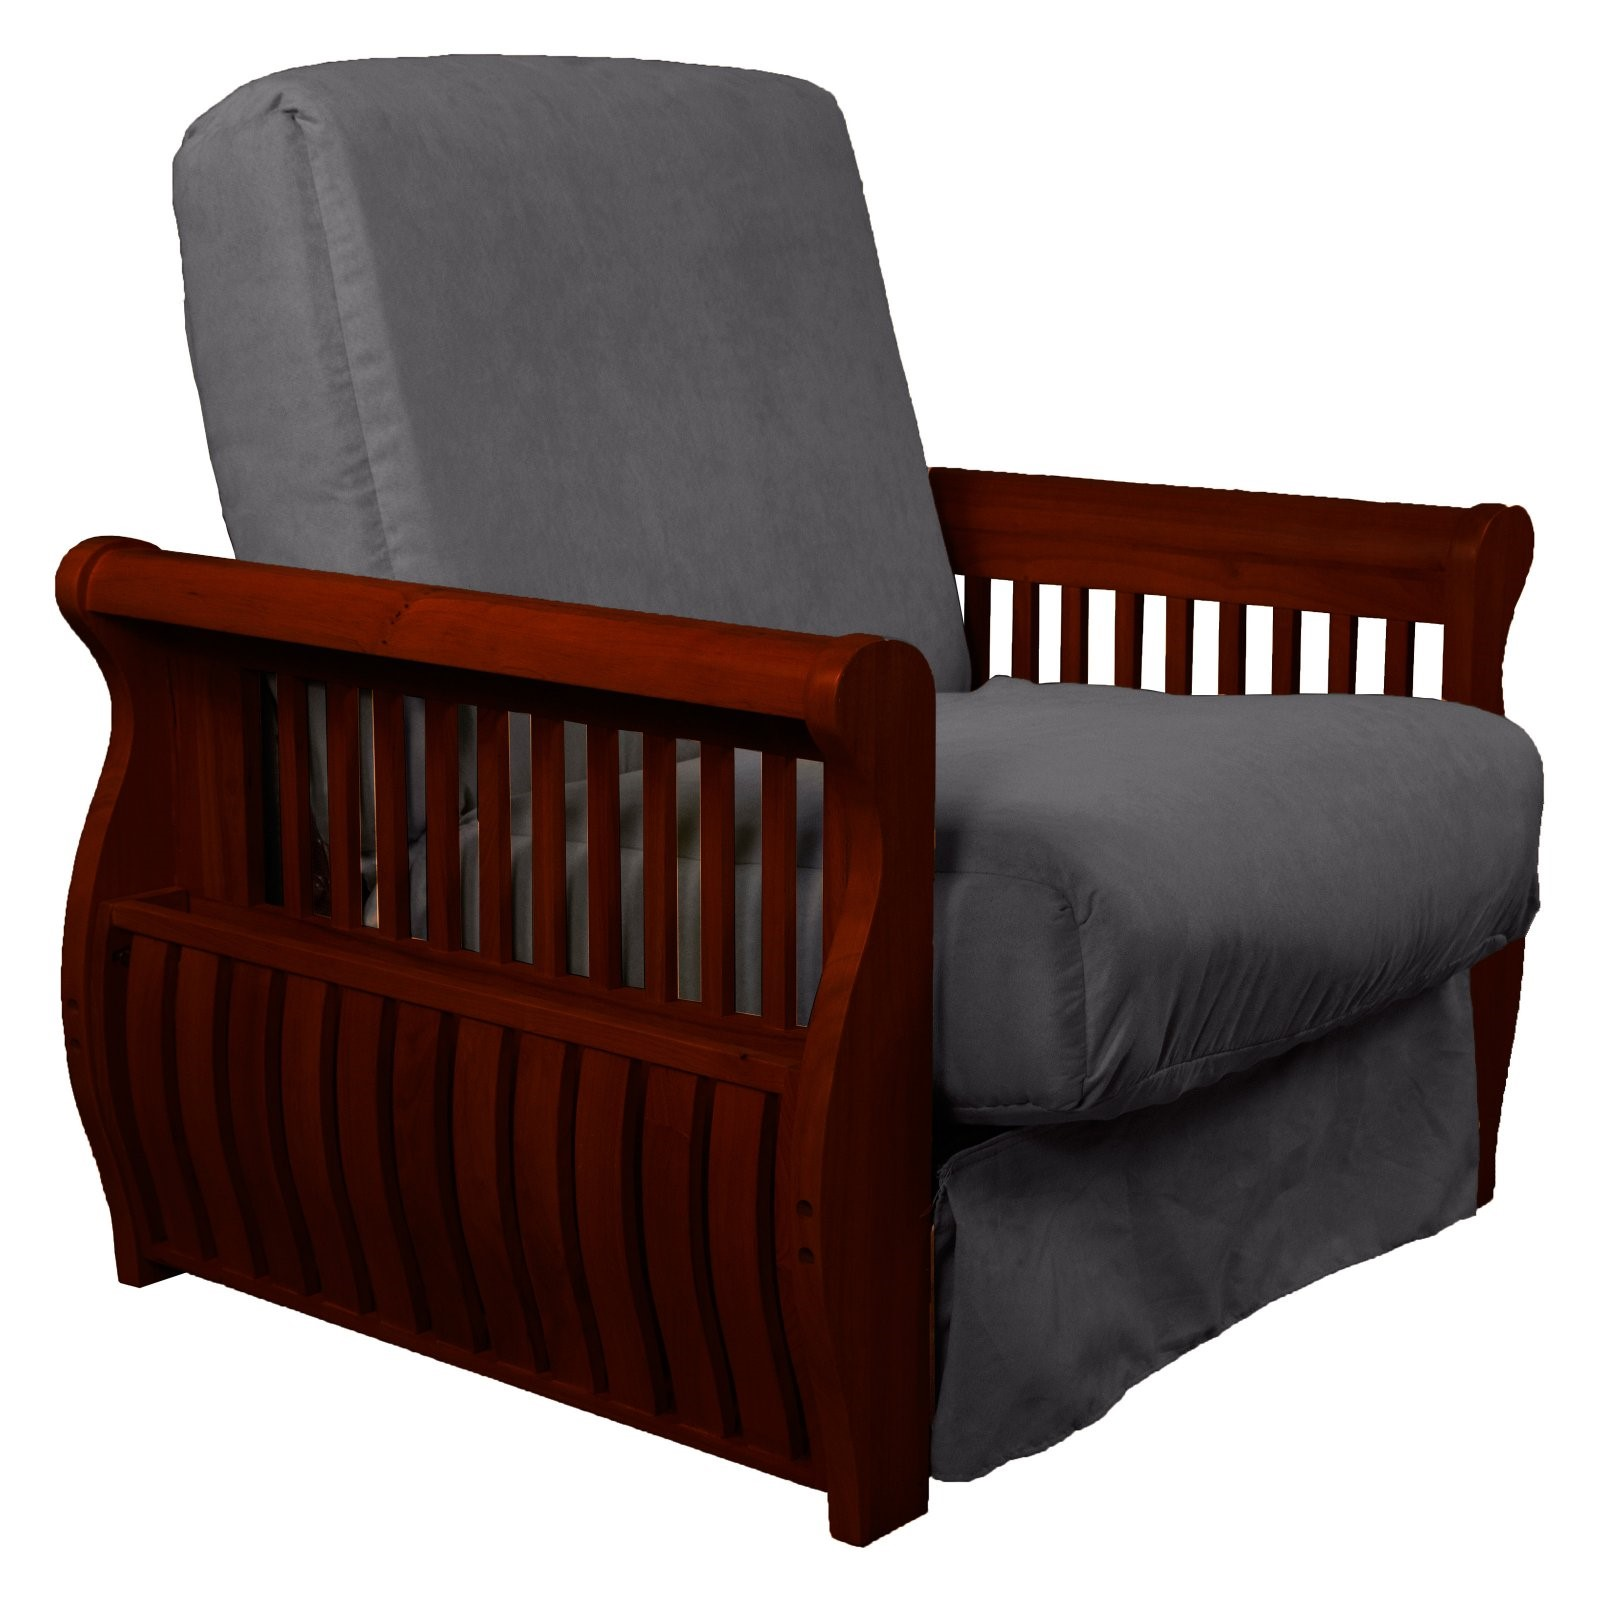 Epic Home Furnishings Sydney Perfect Sit & Sleep Pocketed Coil Innerspring with Pillow Top Sleeper Chair